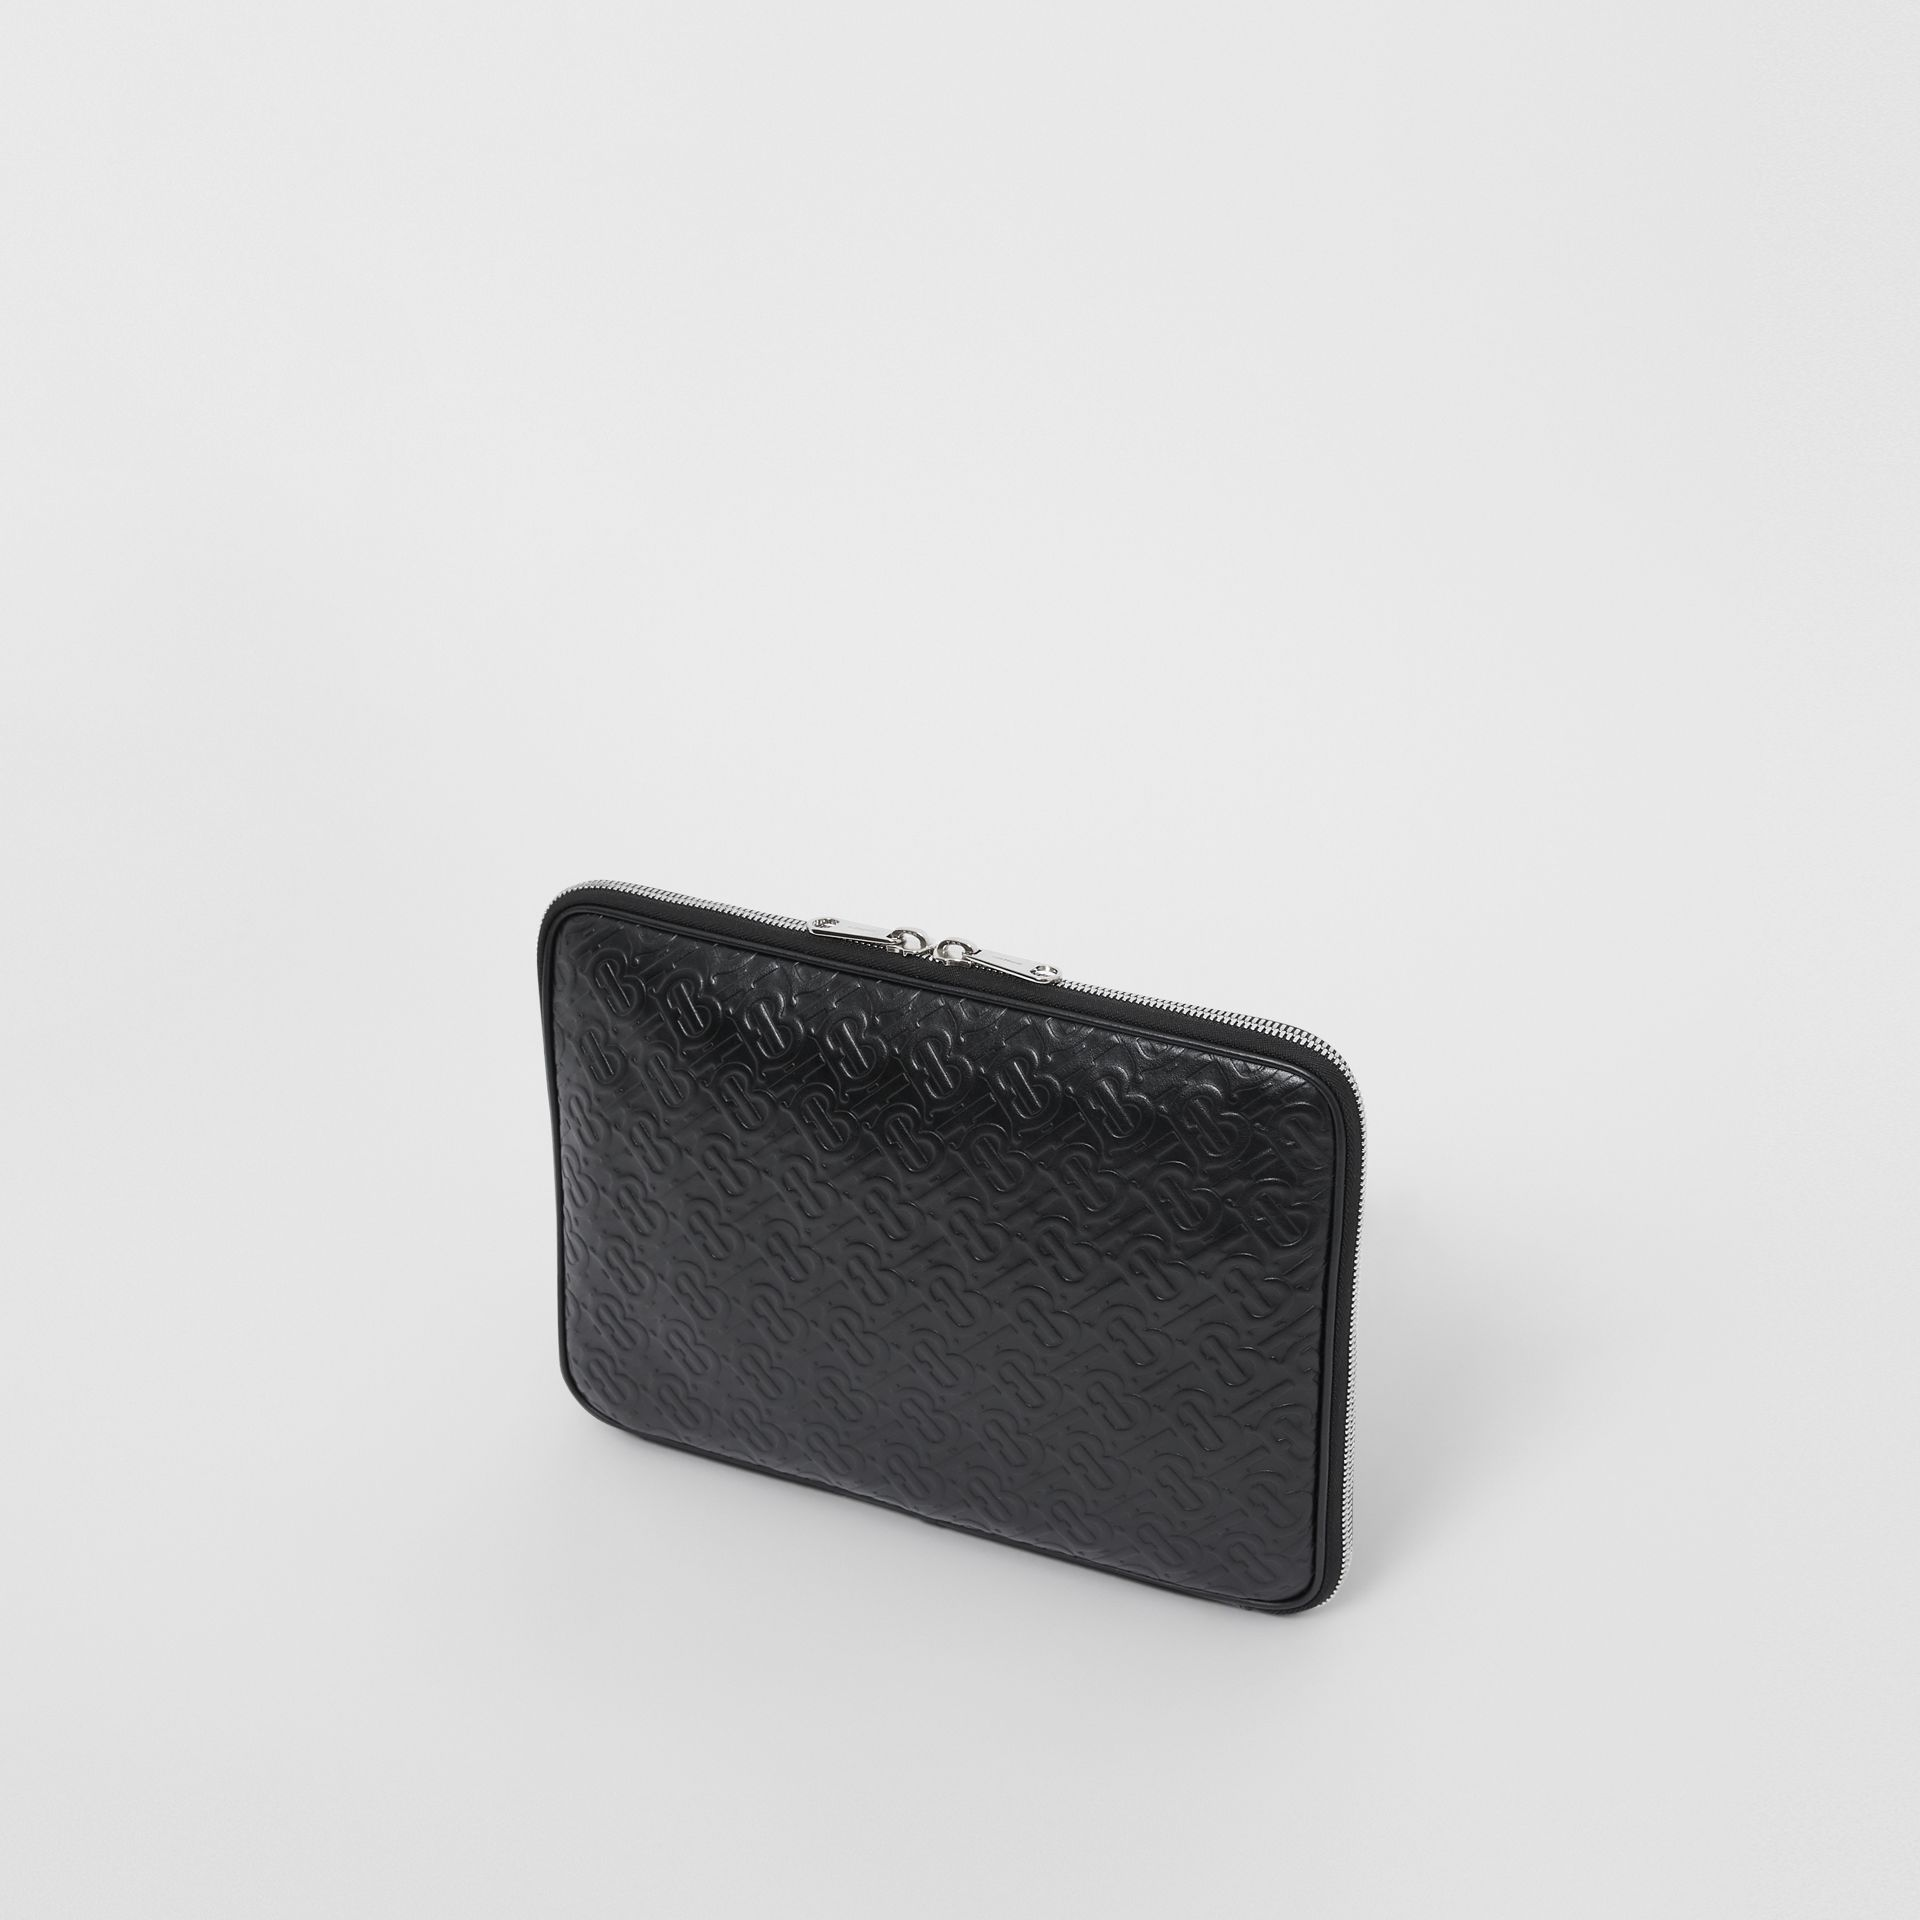 Monogram Leather Digital Case in Black - Men | Burberry Singapore - gallery image 2